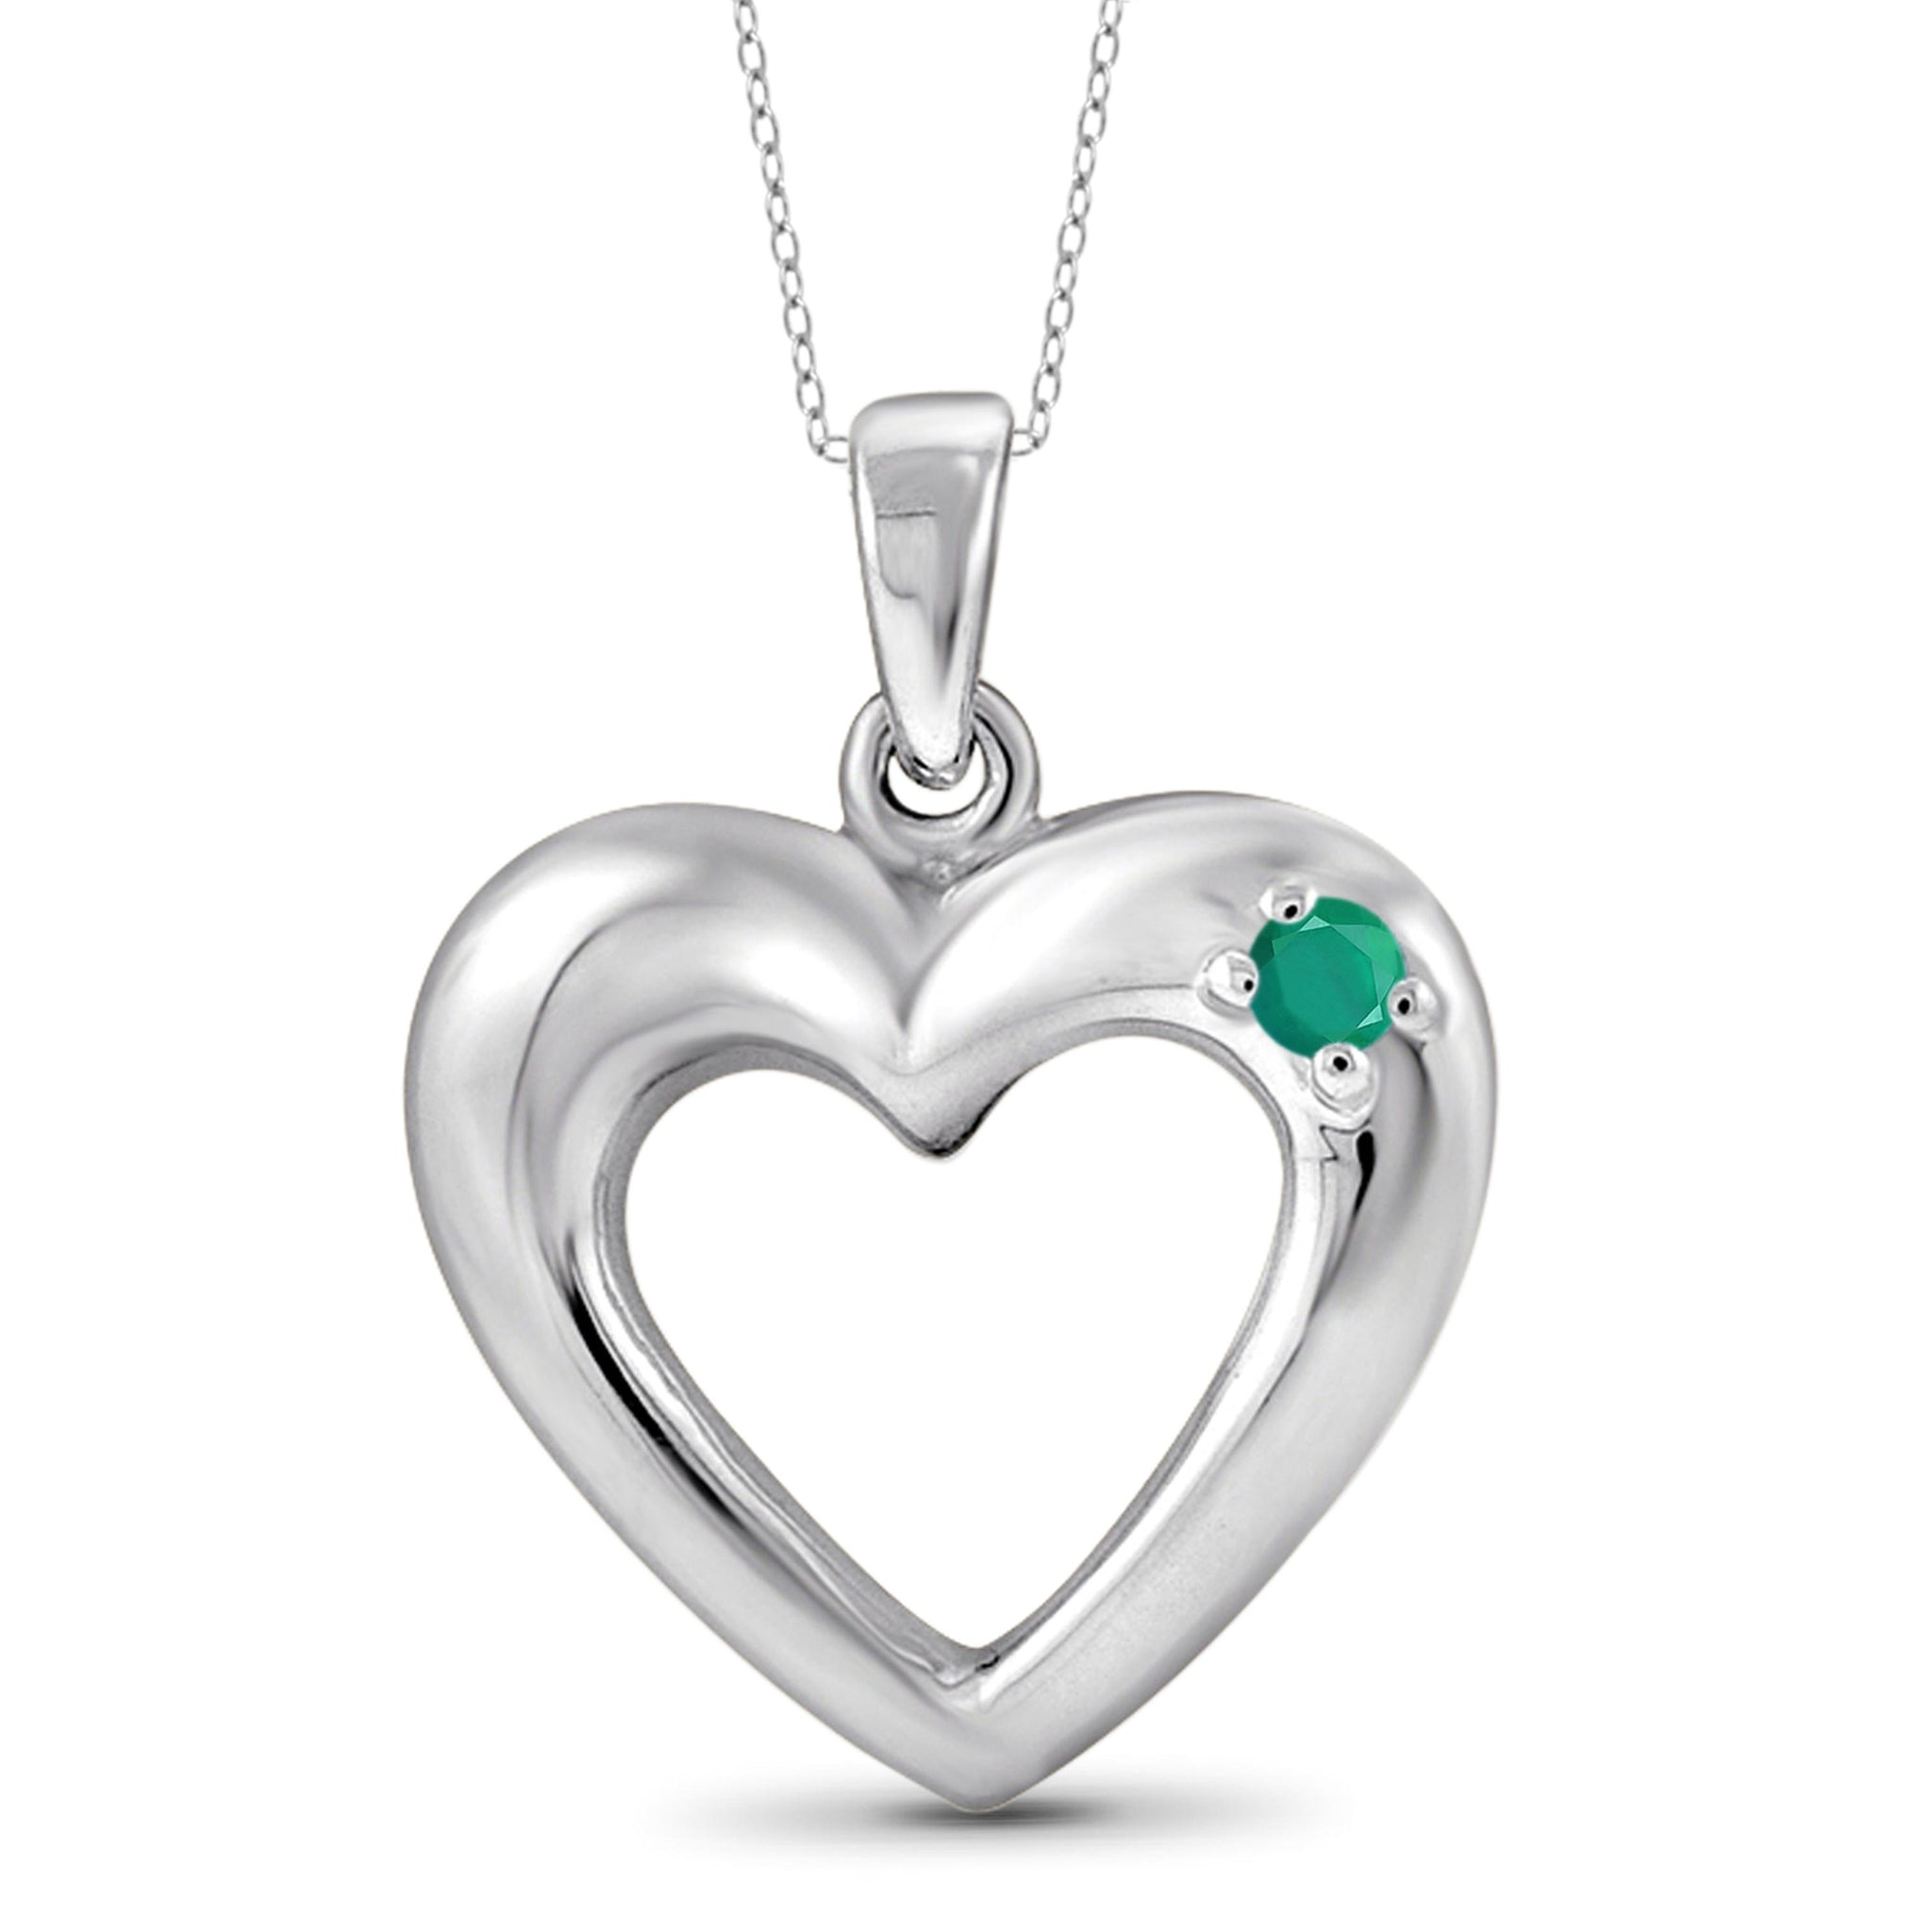 JewelonFire Emerald Accent Sterling Silver Heart Pendant - Assorted Colors